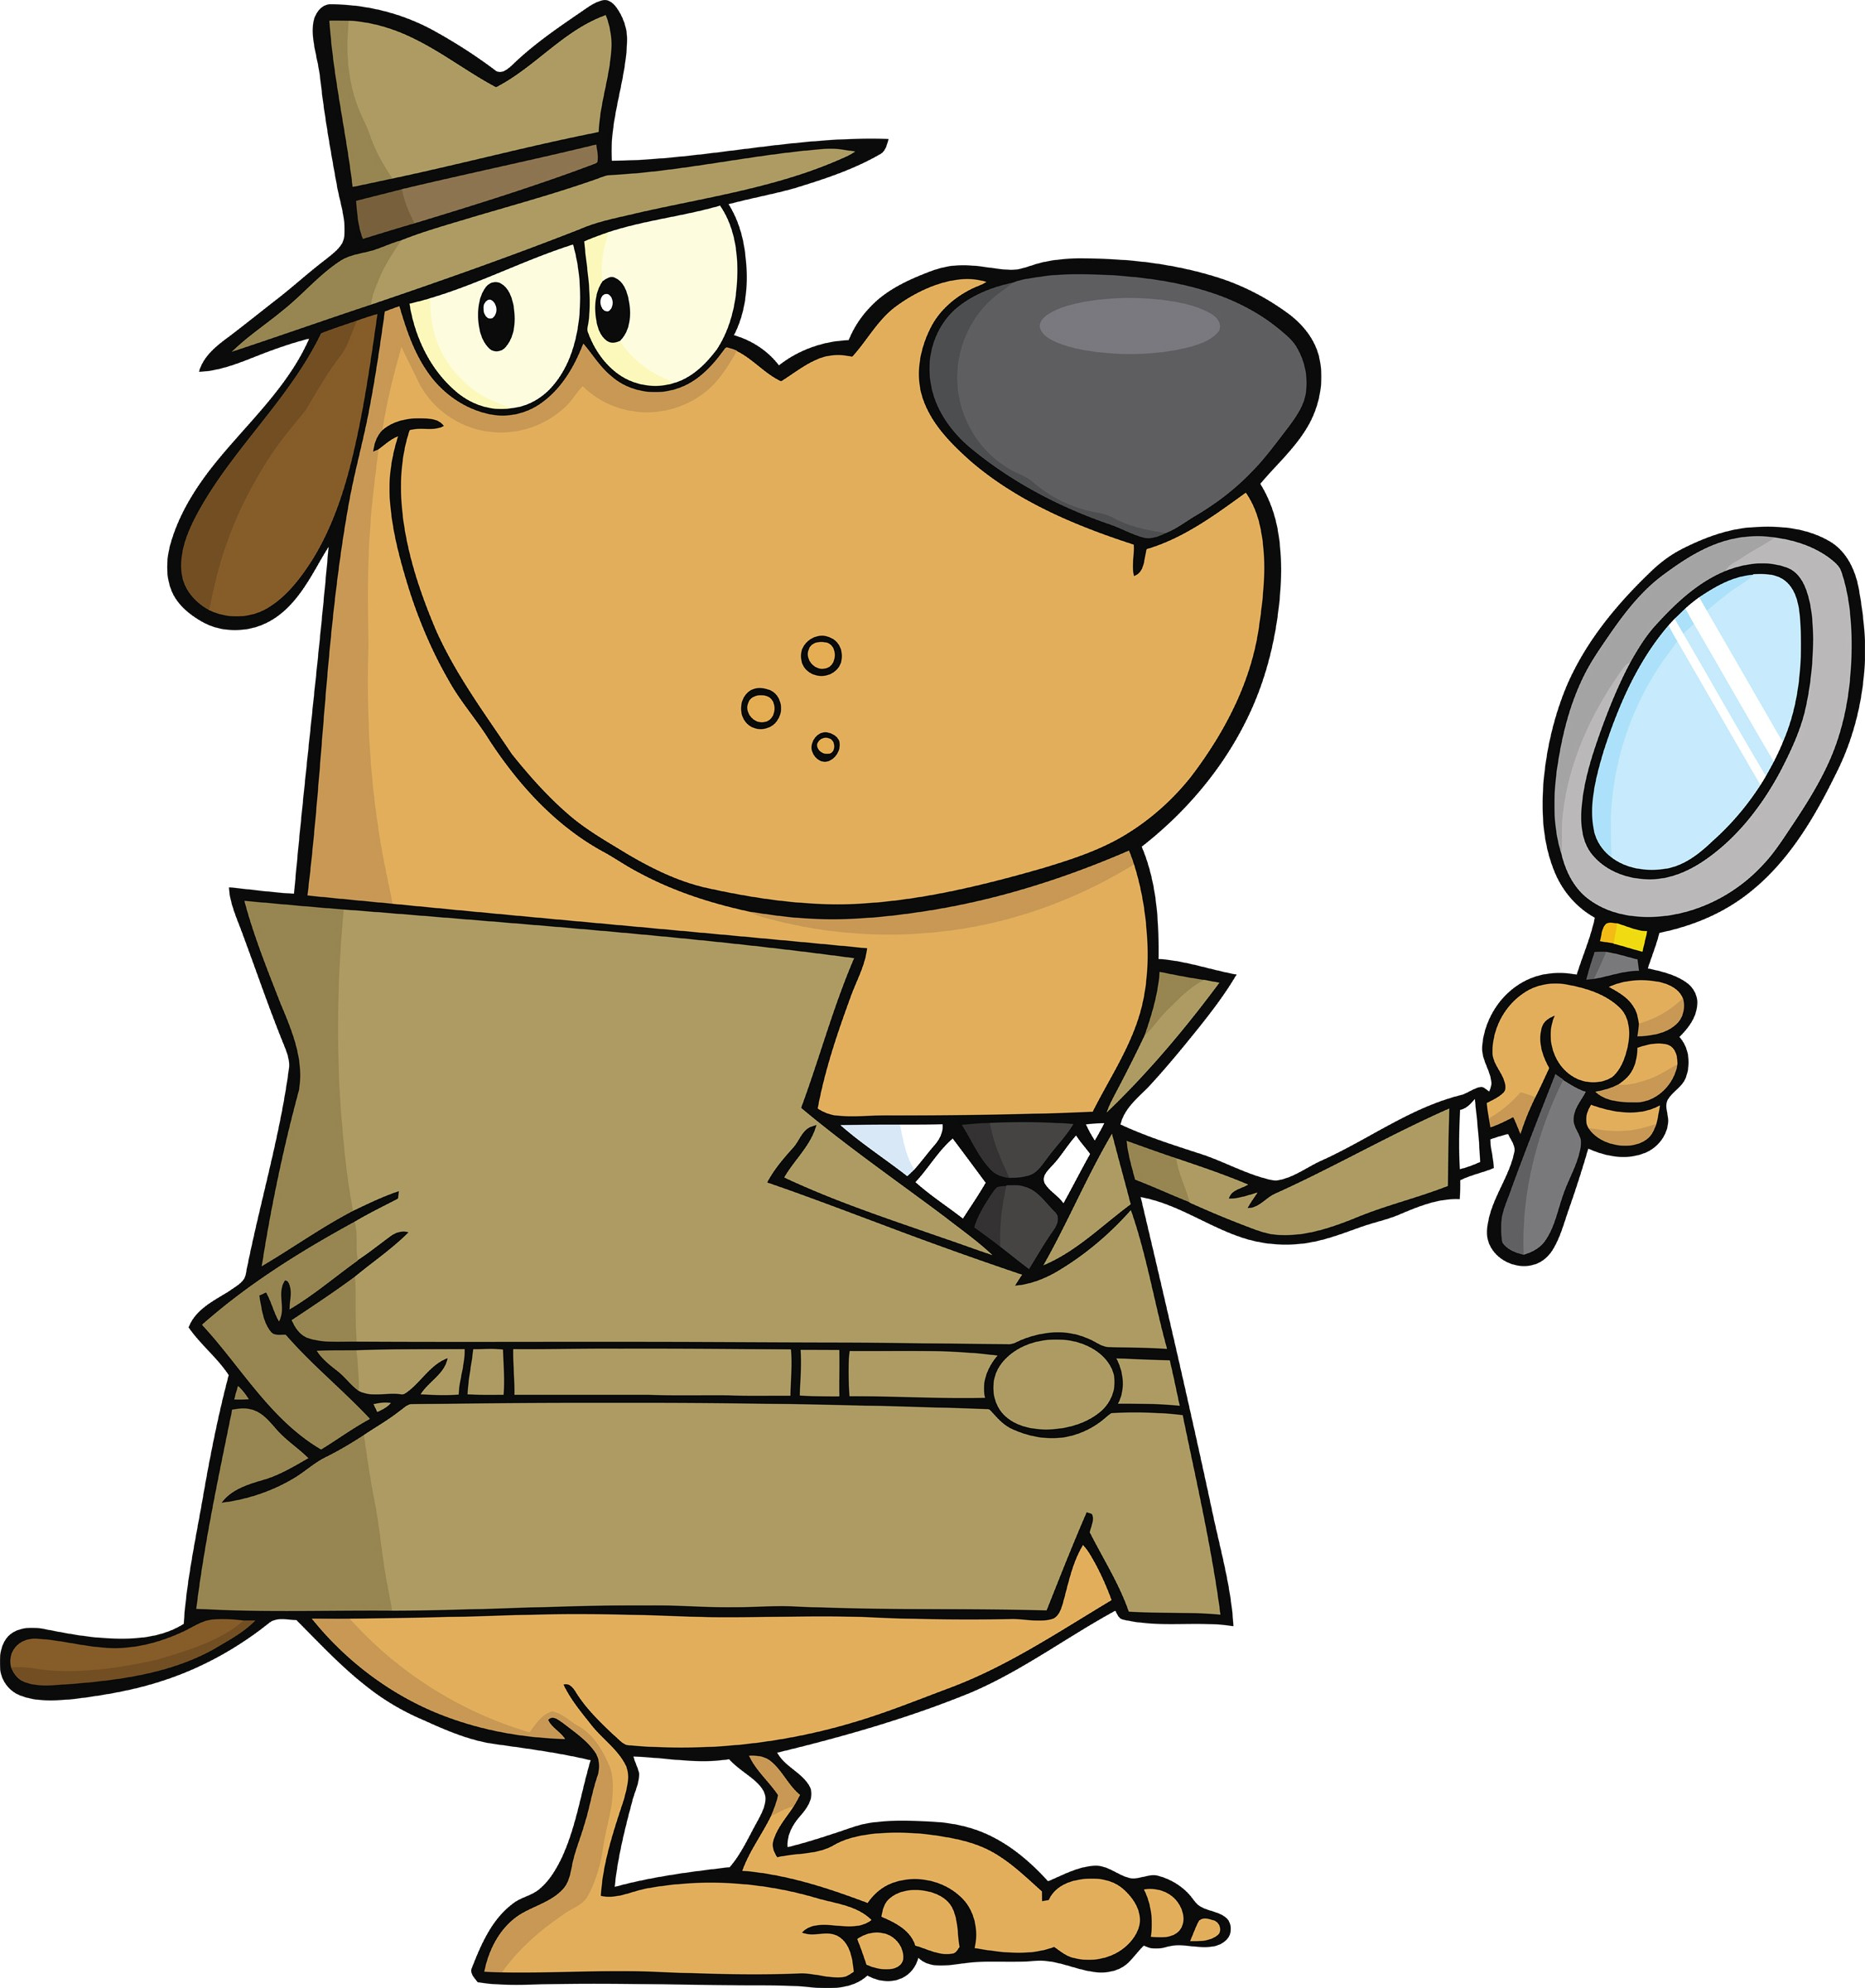 detective silhouette clip art at getdrawings com free for personal rh getdrawings com  free clip art detective magnifying glass